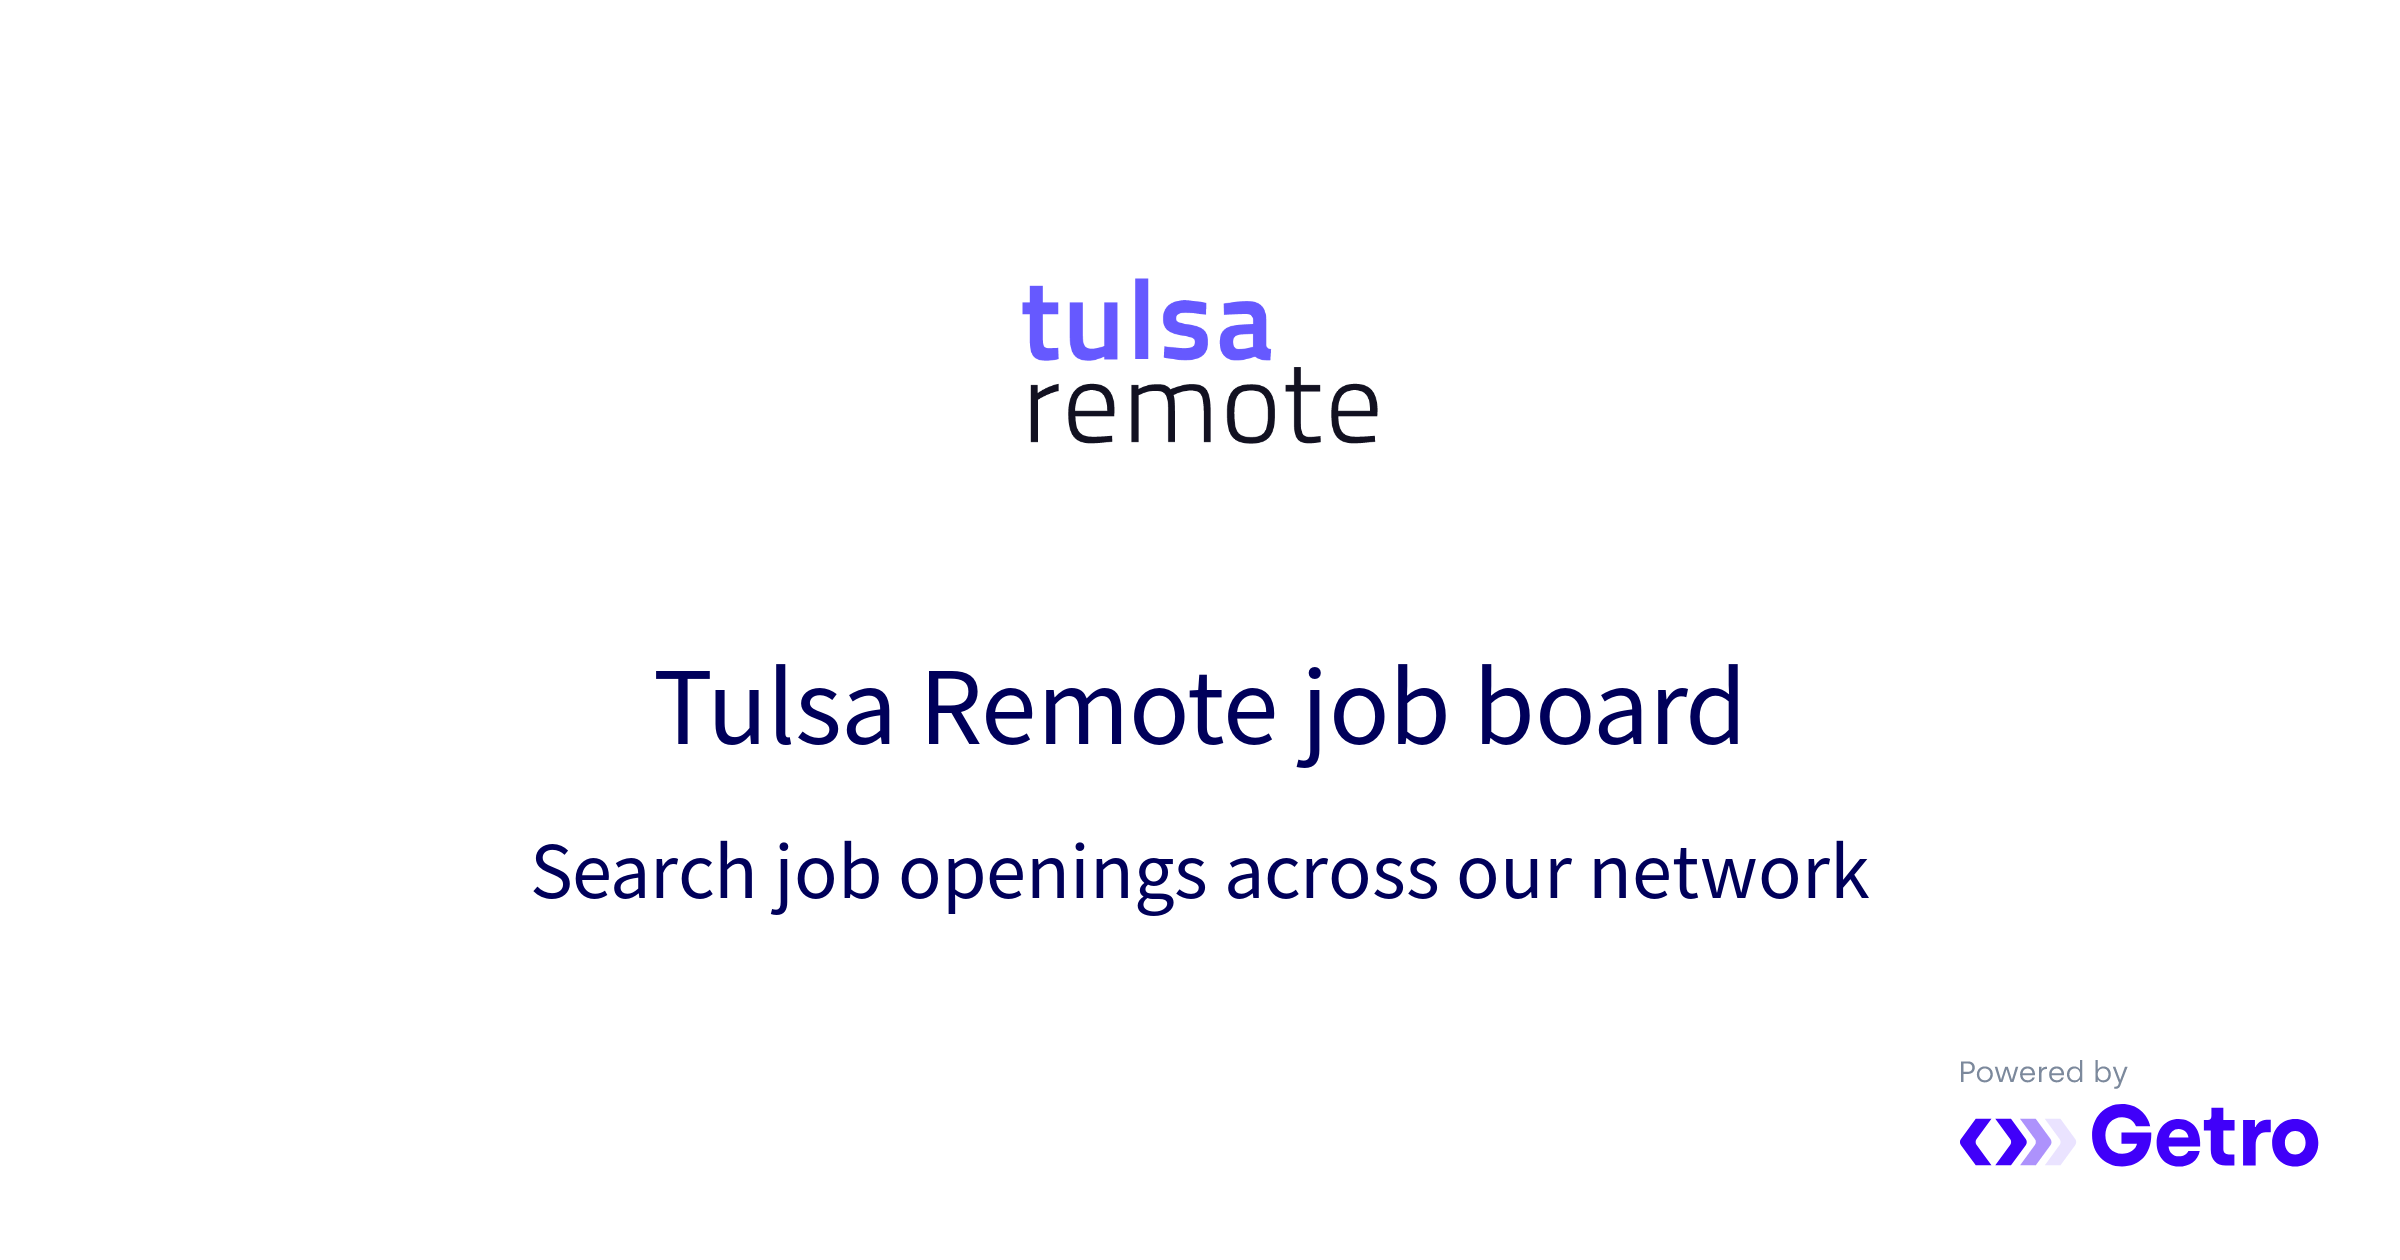 Jobs Tulsa Remote Job Board